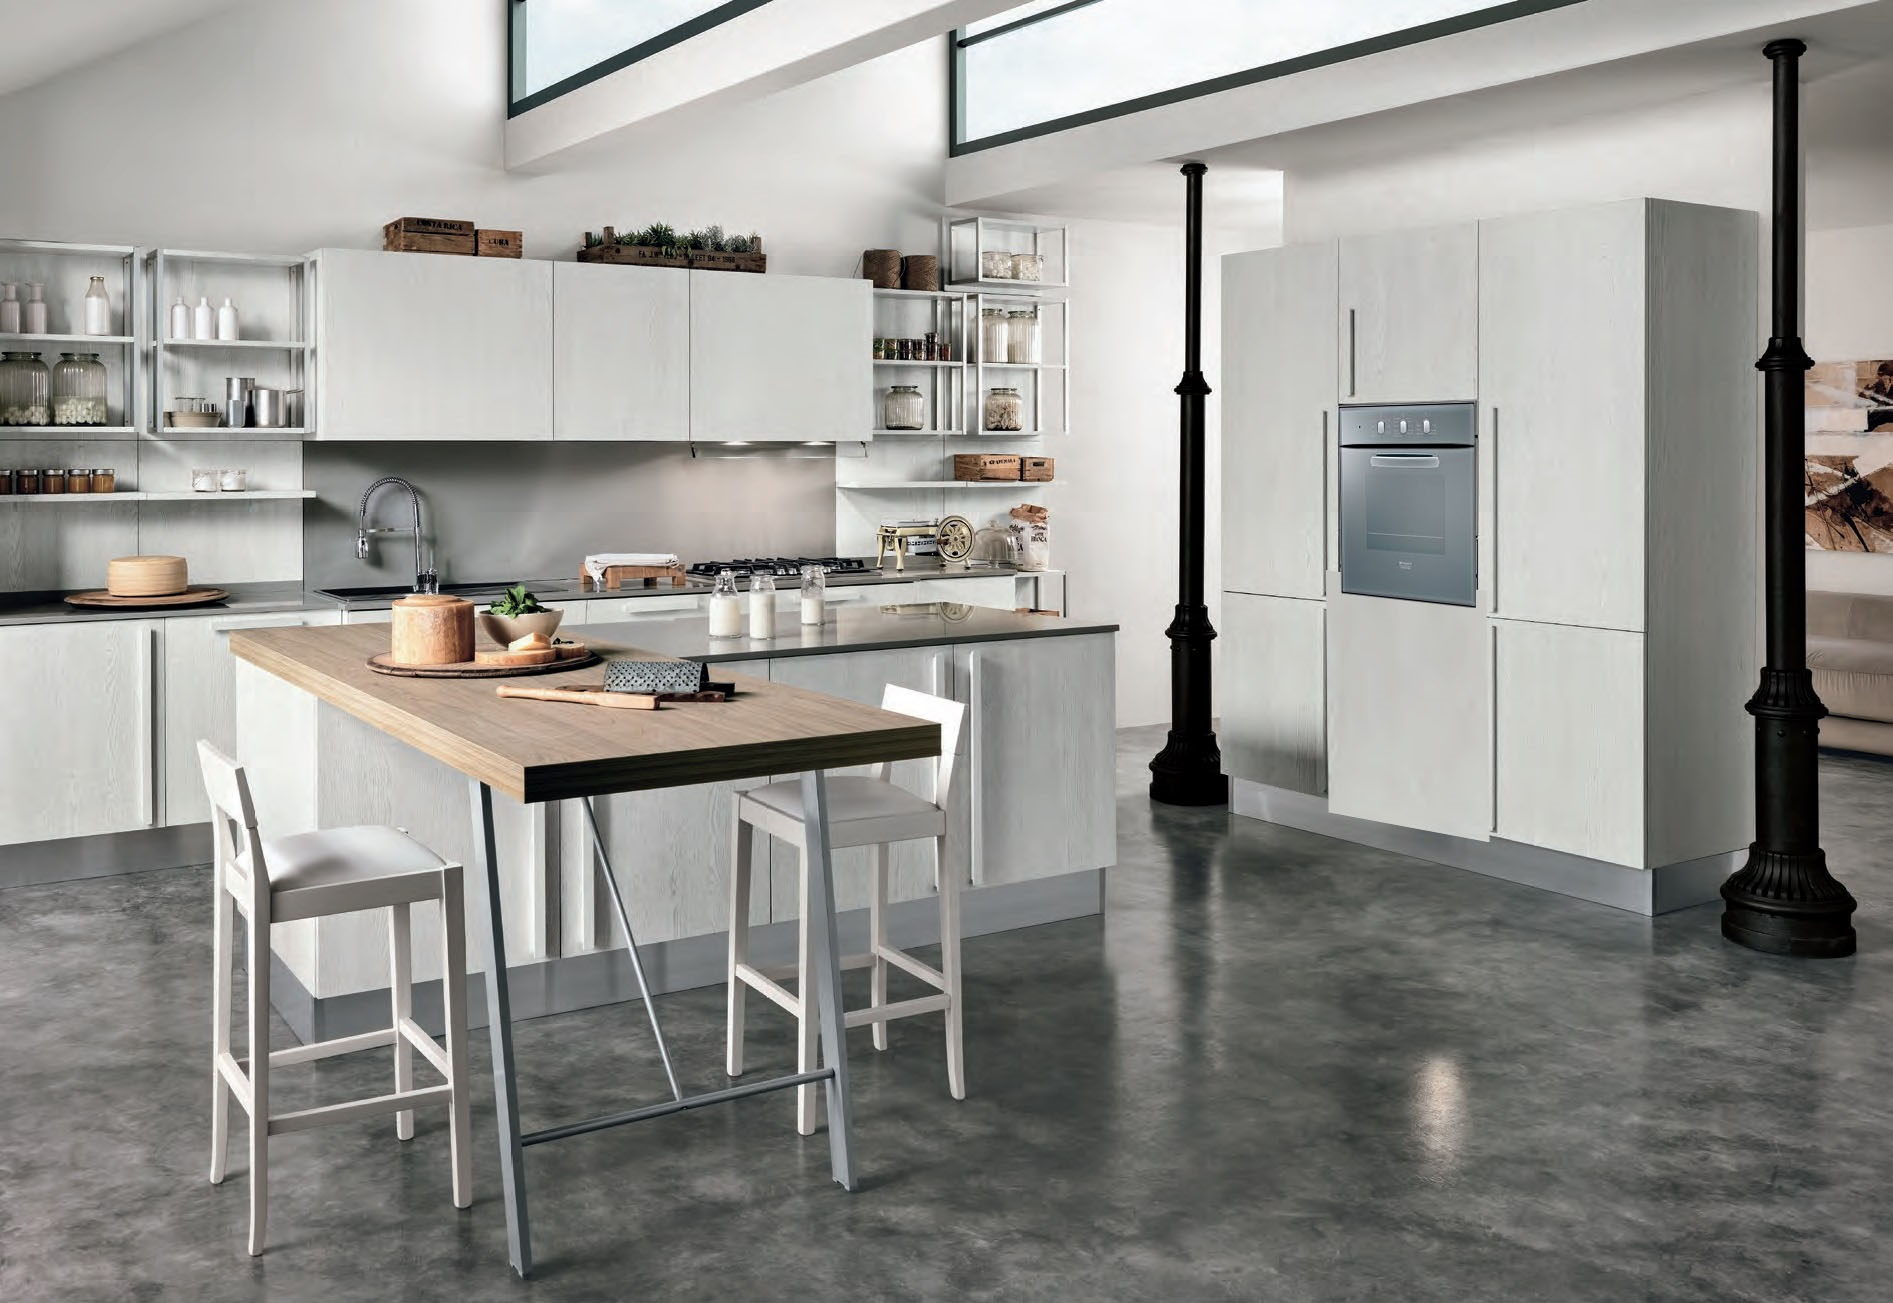 https://www.outletarredamento.it/img/cucine/cucina-essenza-white-shabby-chic-con-isola-offerta-outlet-convenienza_O1.jpg